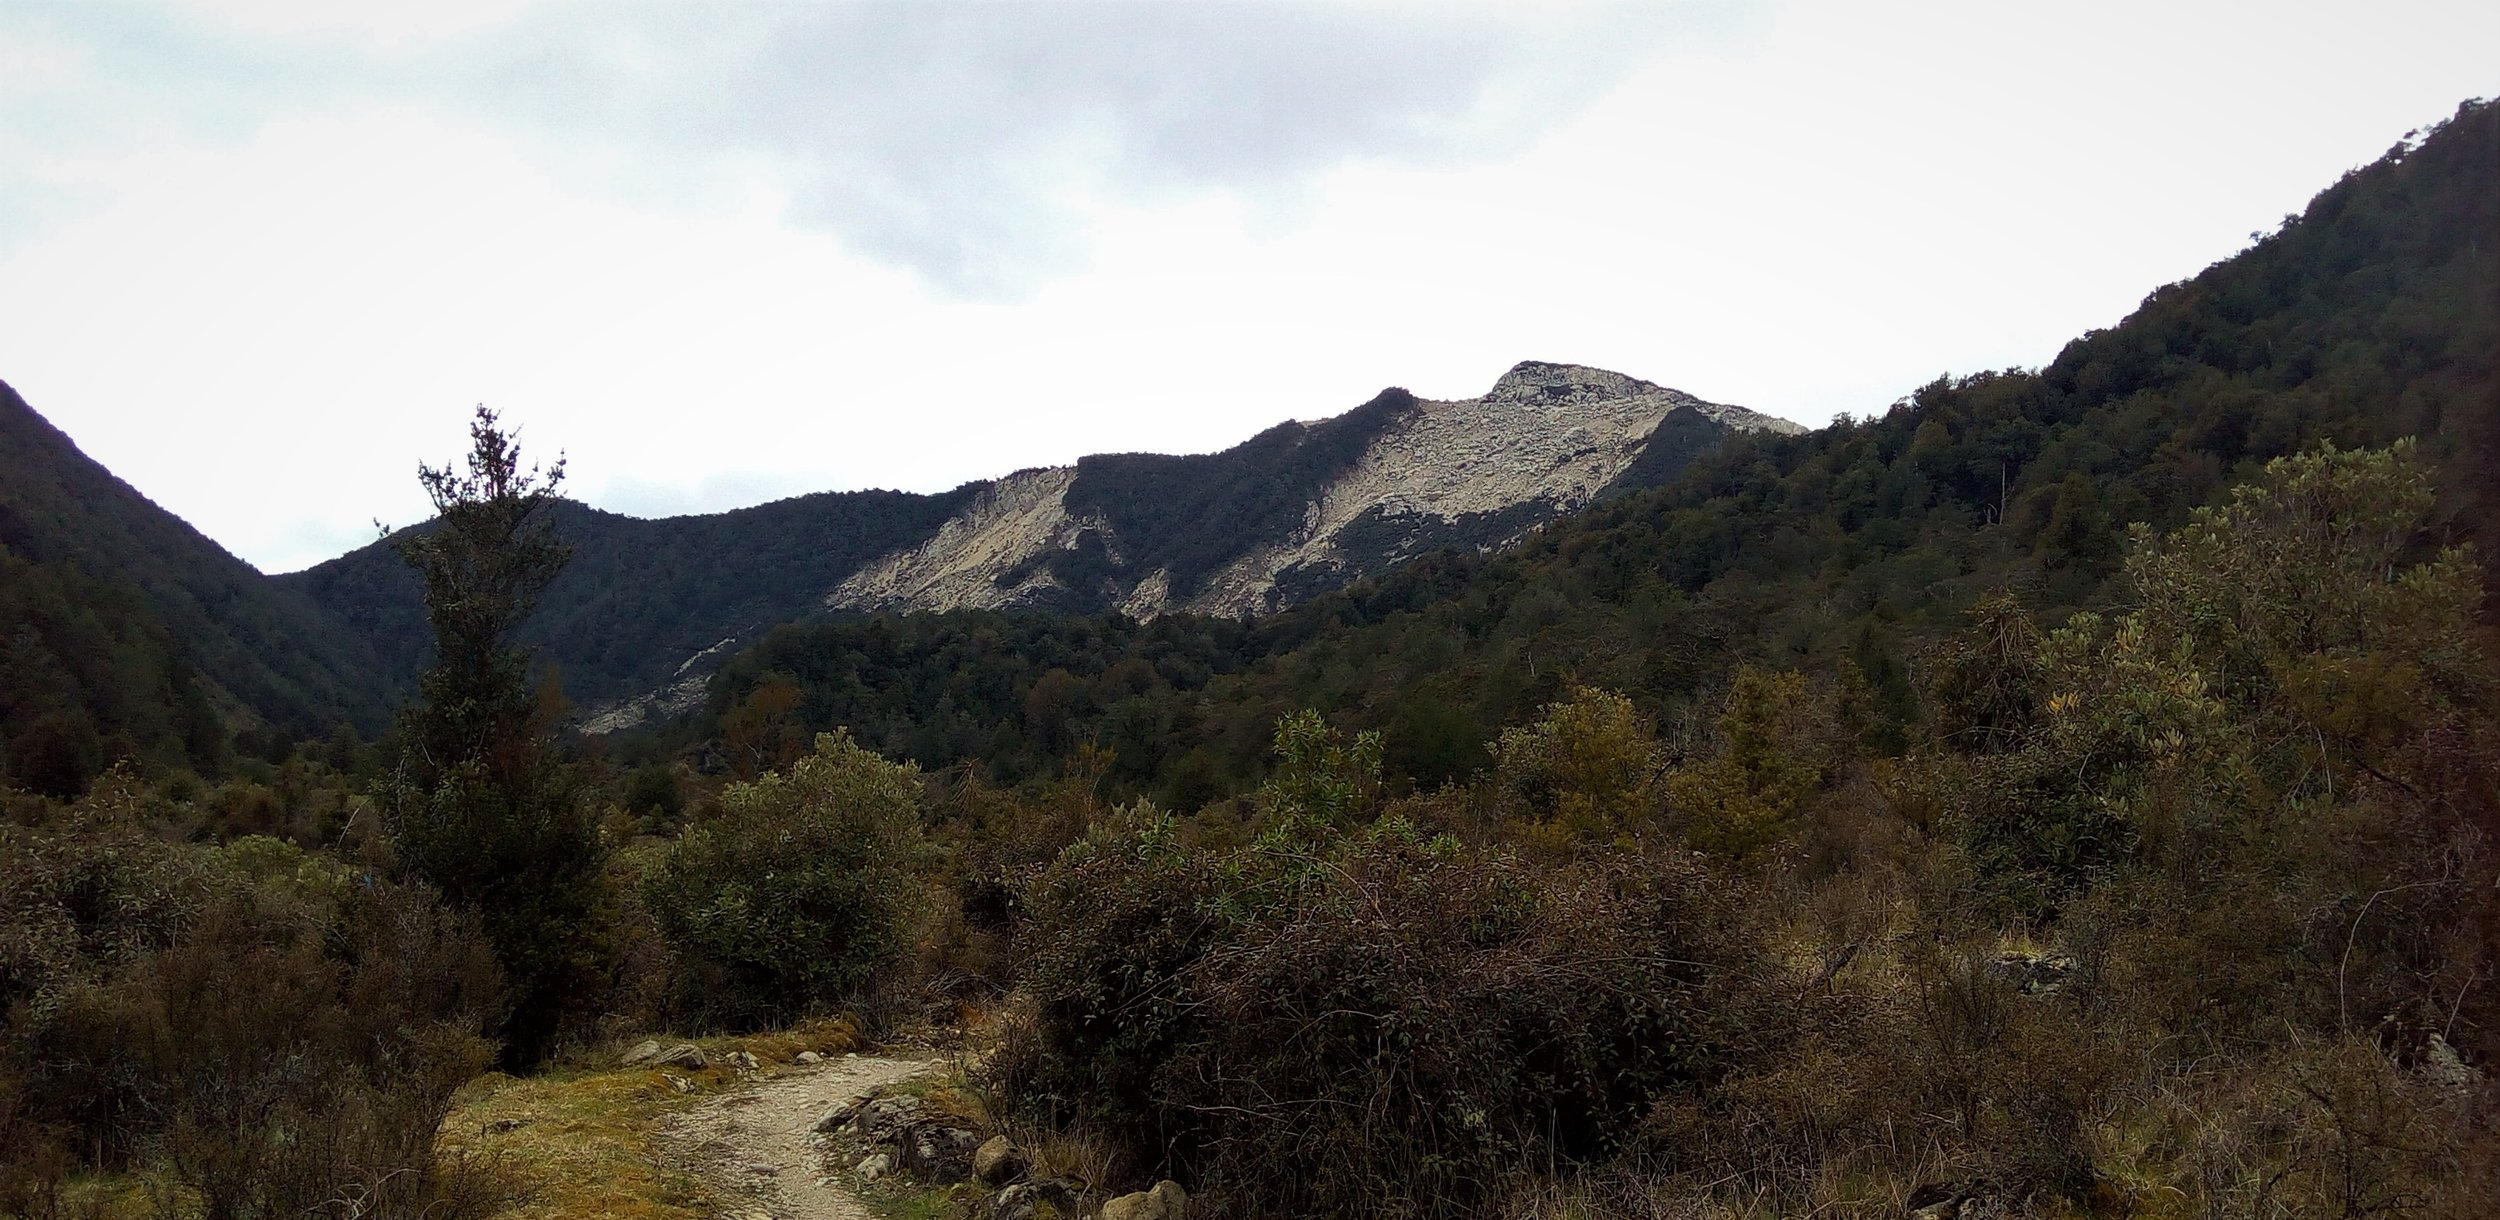 A broken mountain , large land slides throughout the track from earthquakes.